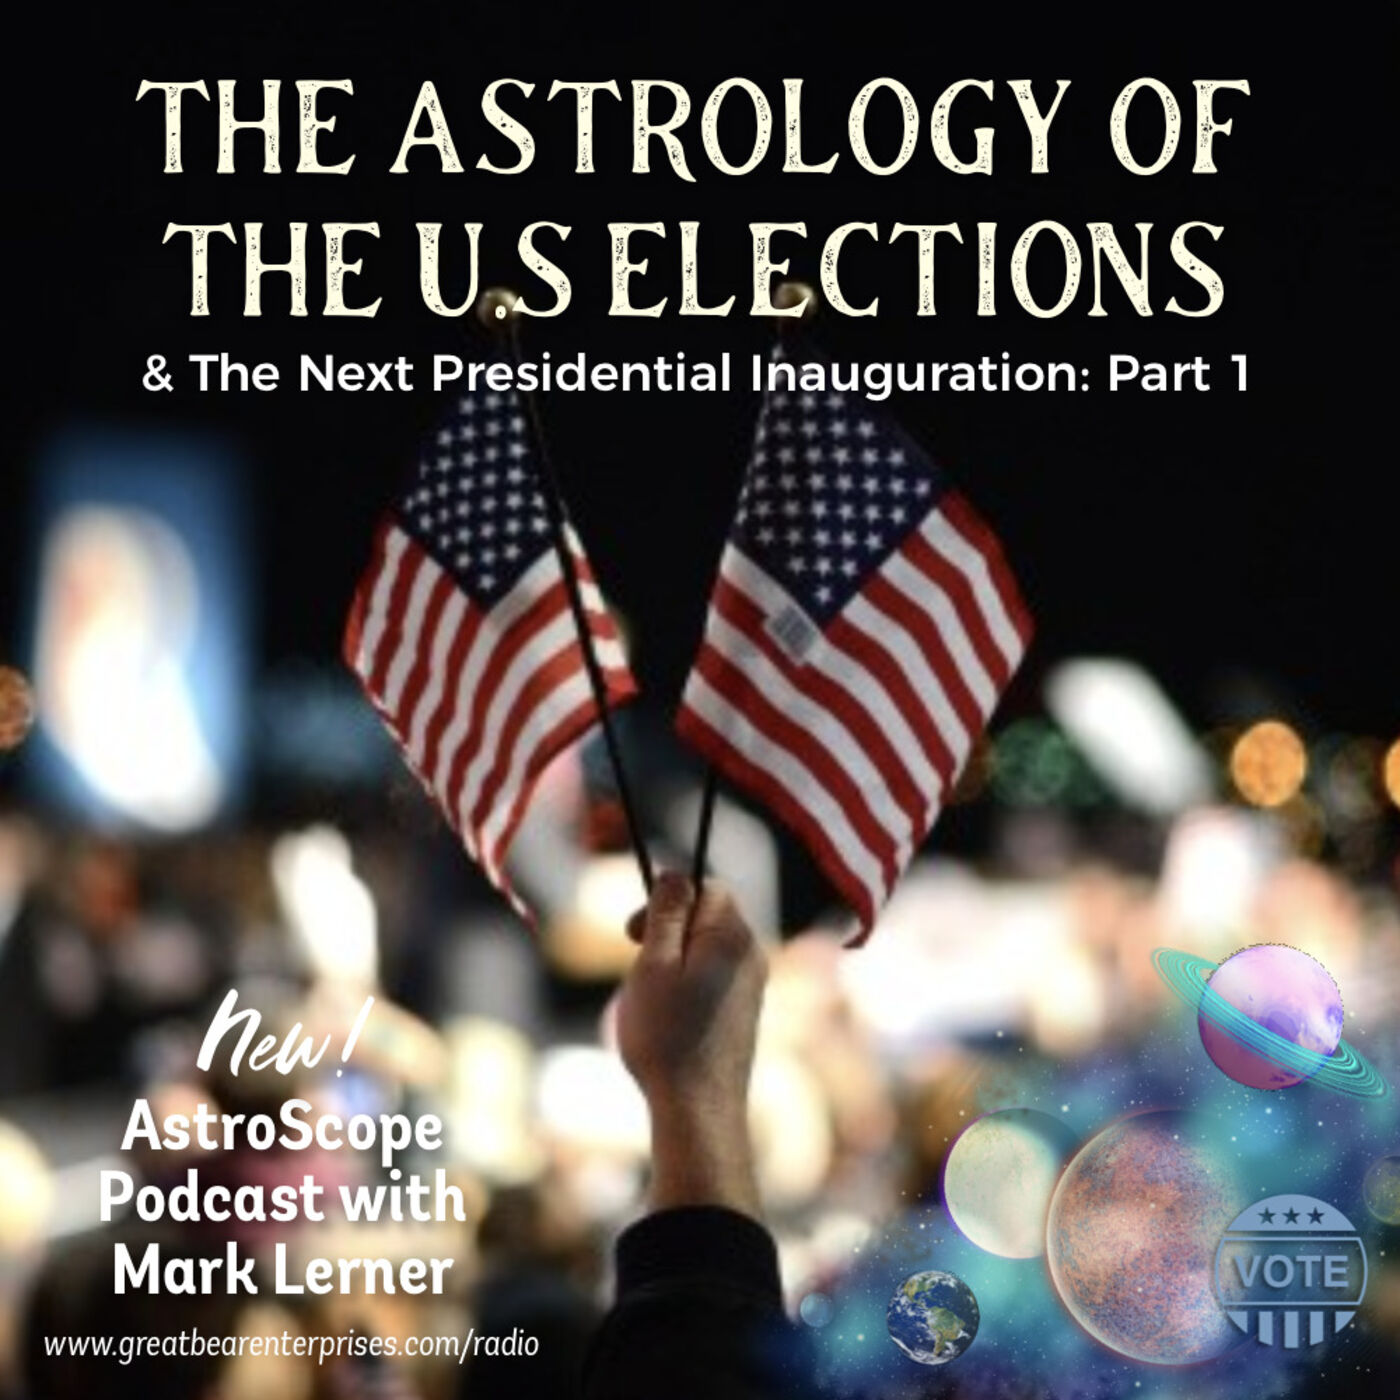 The Astrology of the 2020 U.S. Elections & the Next Presidential Inauguration: Part 1